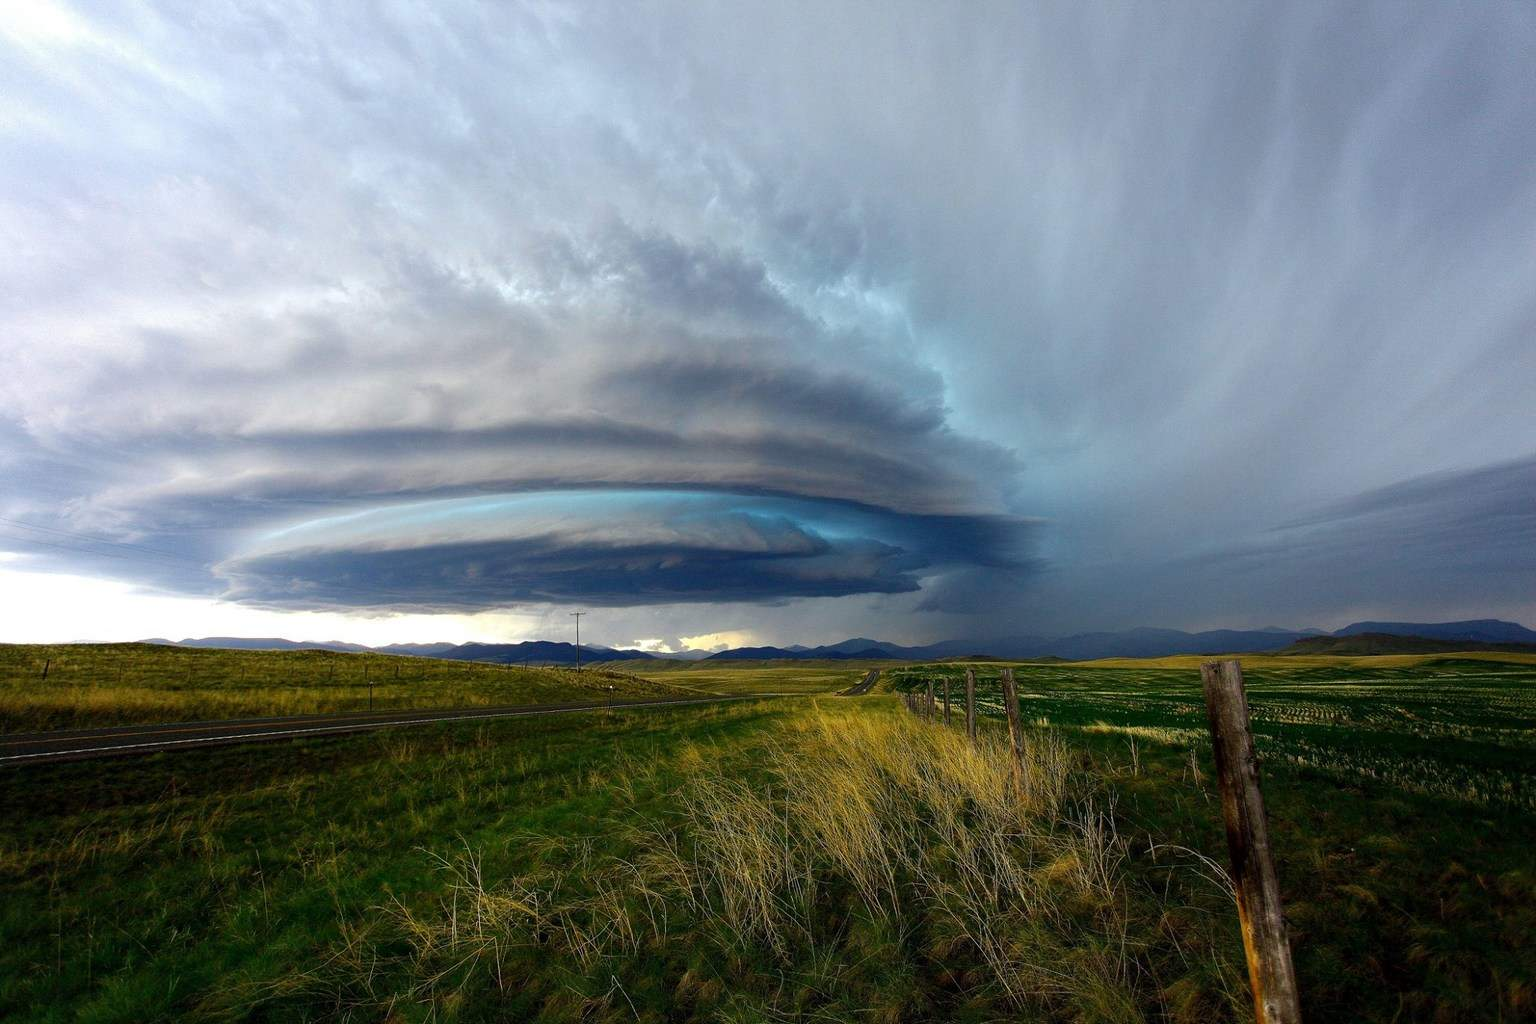 A throwback to one of my all time favorite's, June 4th 2012, SW of Fort Shaw Montana. We watched this storm come off the mountains early in the day, with each passing minute the storm became more amazing, morphing from a disc/saucer to stacked plates, till eventually getting visual on a low wall cloud. The storm maintained amazing structure for about 3 hours, producing very large hail at some points.